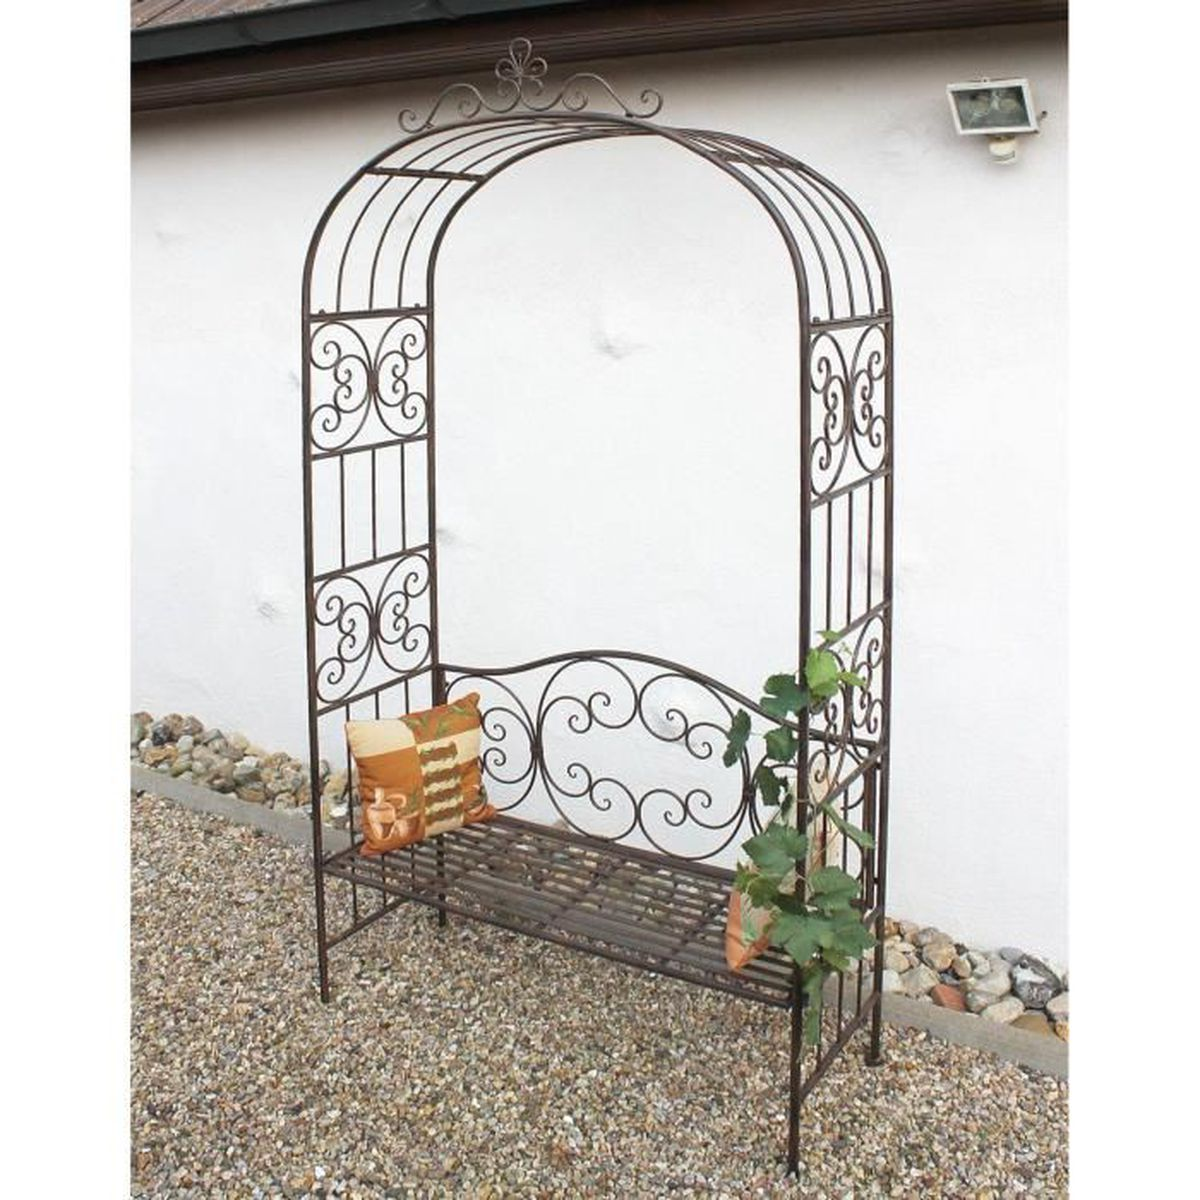 dandibo arcade rosier avec banc 120852 en m tal 250cm banc de jardin espalier pergola support. Black Bedroom Furniture Sets. Home Design Ideas